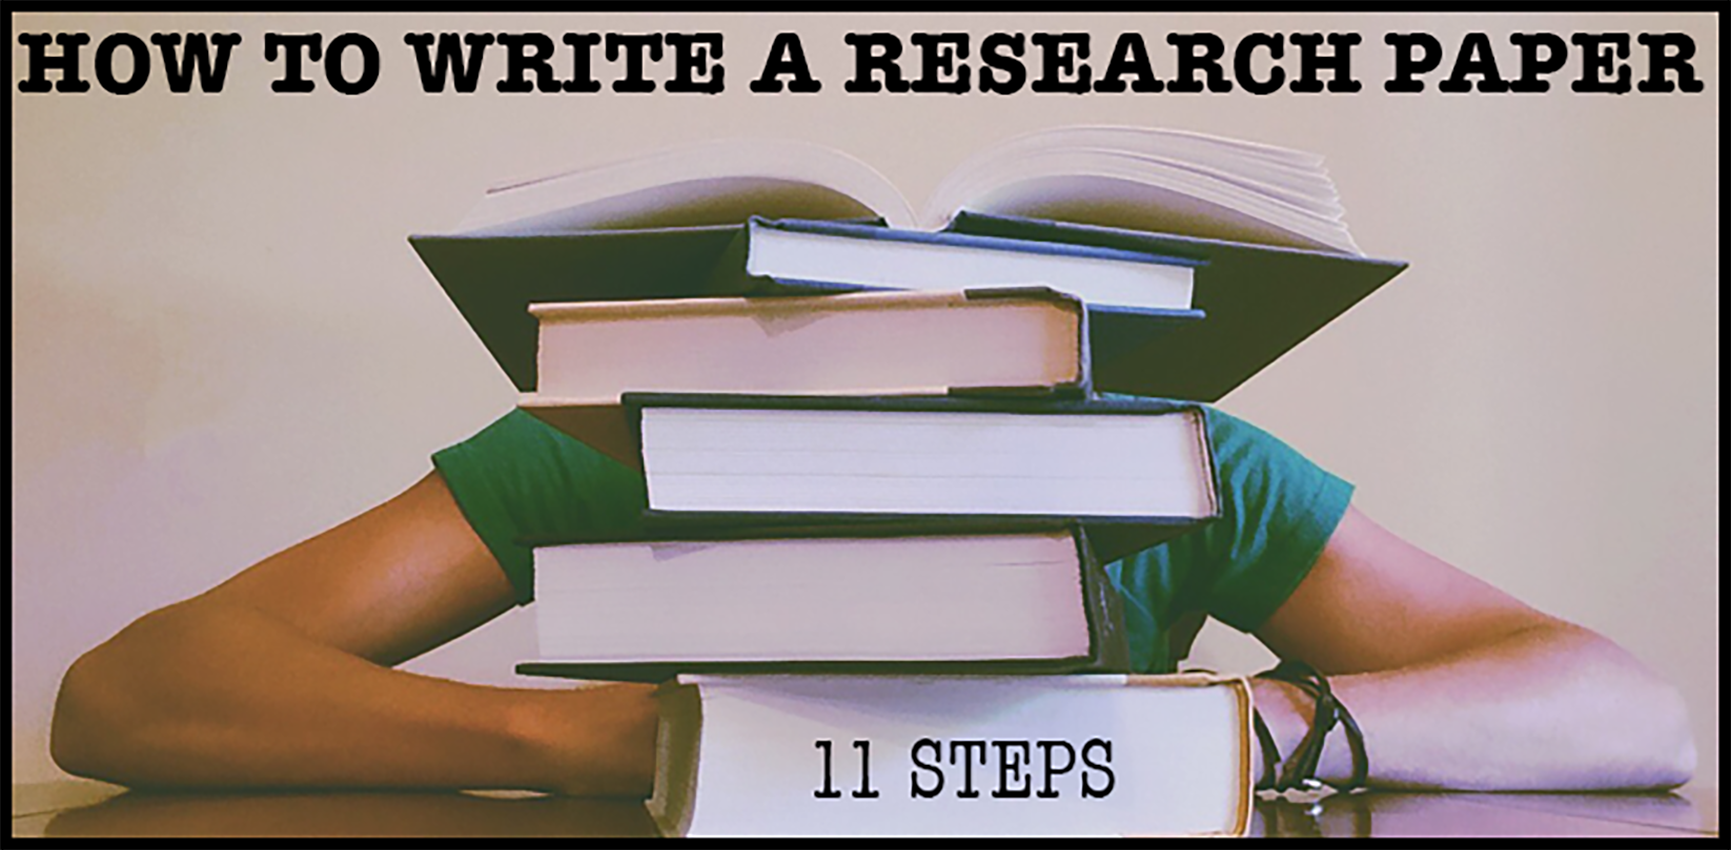 paper research steps write Worried about an upcoming writing assignment here, tampa, fl tutor anna m  reviews the steps to writing a research paper that will help you.